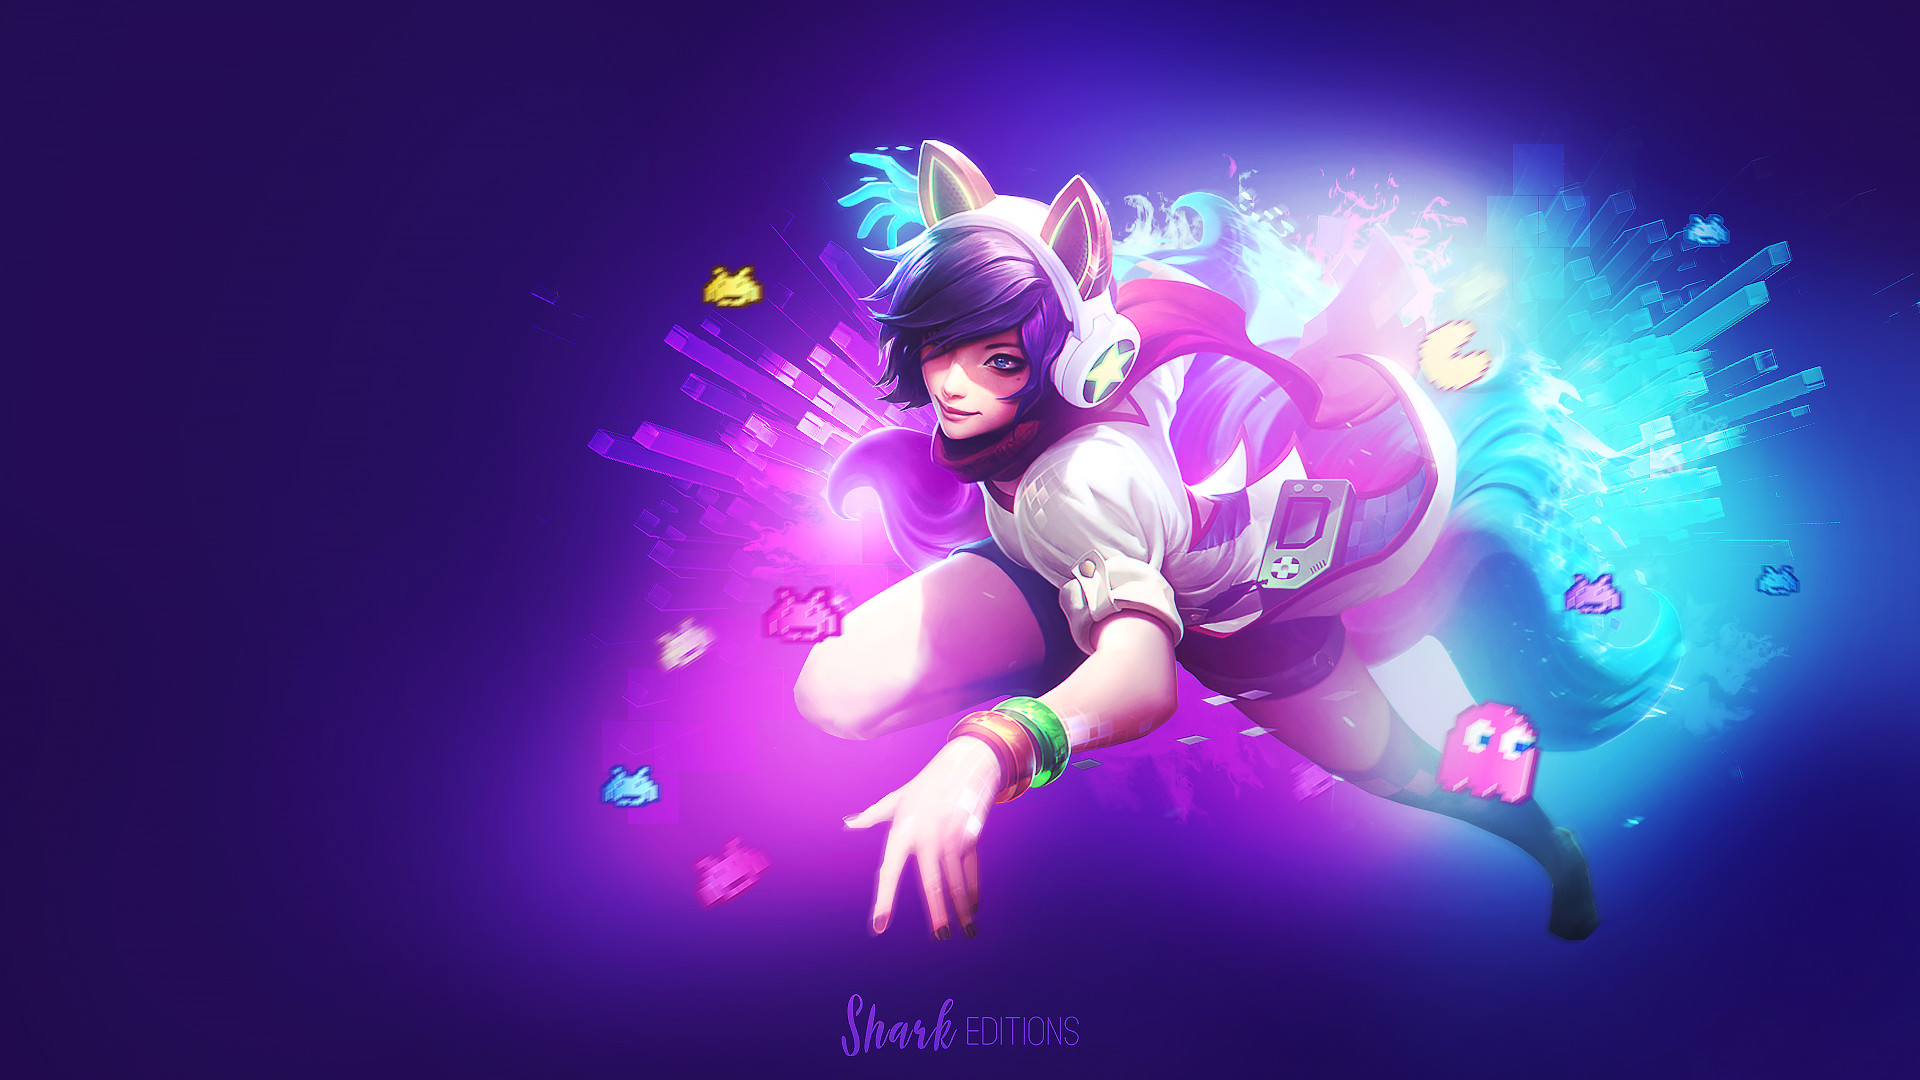 1920x1080 Arcade Ahri wallpaper by LeftLucy Arcade Ahri wallpaper by LeftLucy